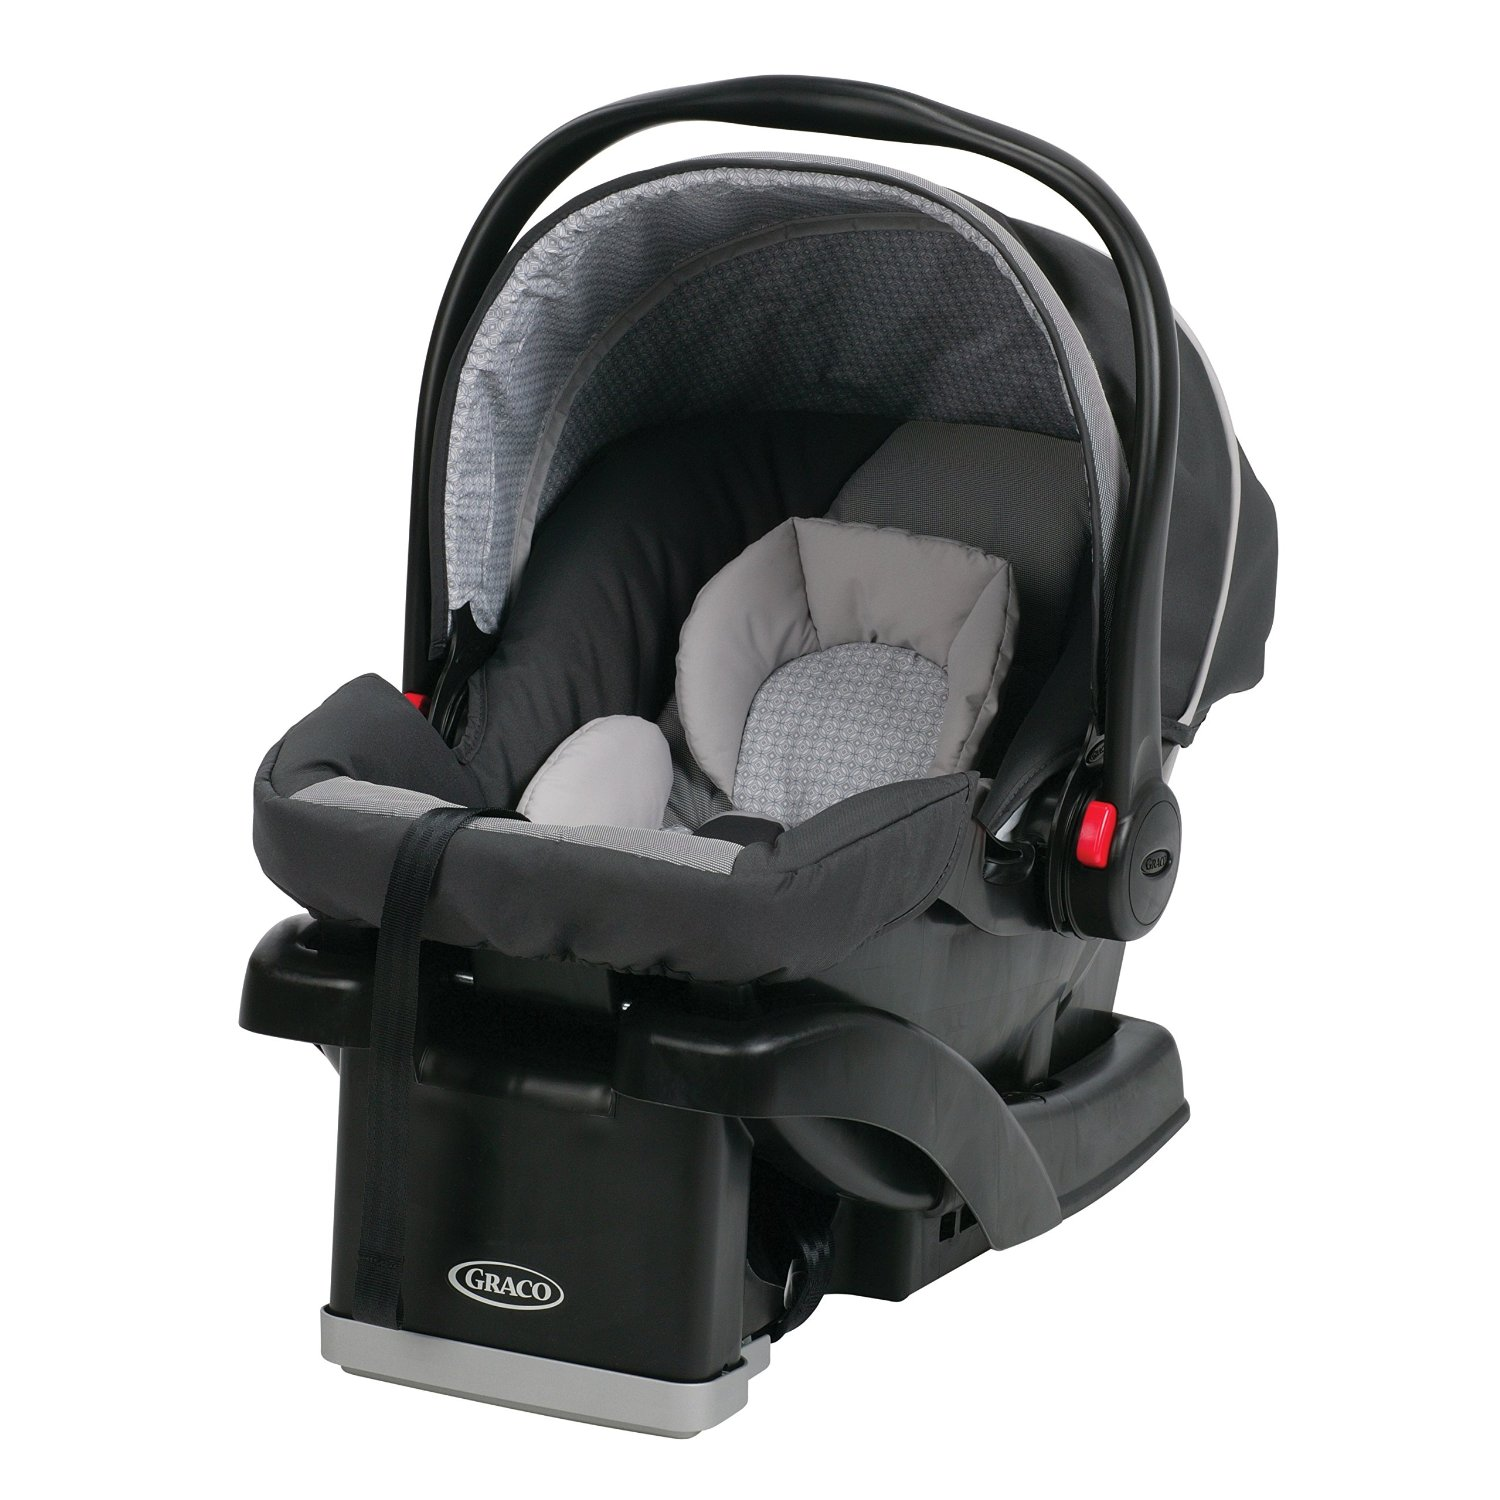 Graco Snugride 30 Vs 30 Lx Is The Lx Worth The Buy